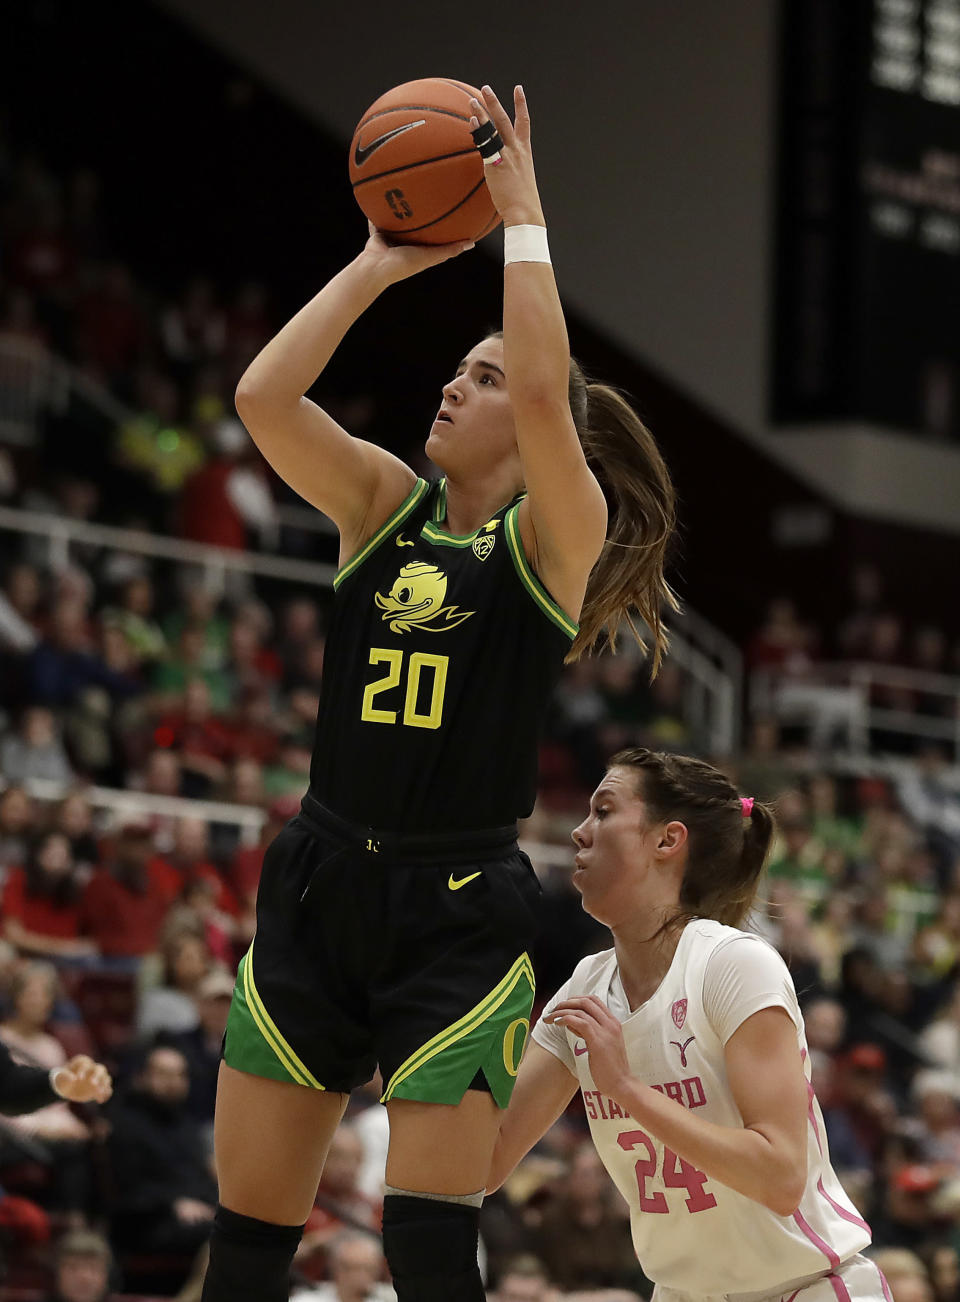 Oregon Ducks guard Sabrina Ionescu (20) shoots over Stanford's Lacie Hull, right, during the first half of an NCAA college basketball game Monday, Feb. 24, 2020, in Stanford, Calif. (AP Photo/Ben Margot)